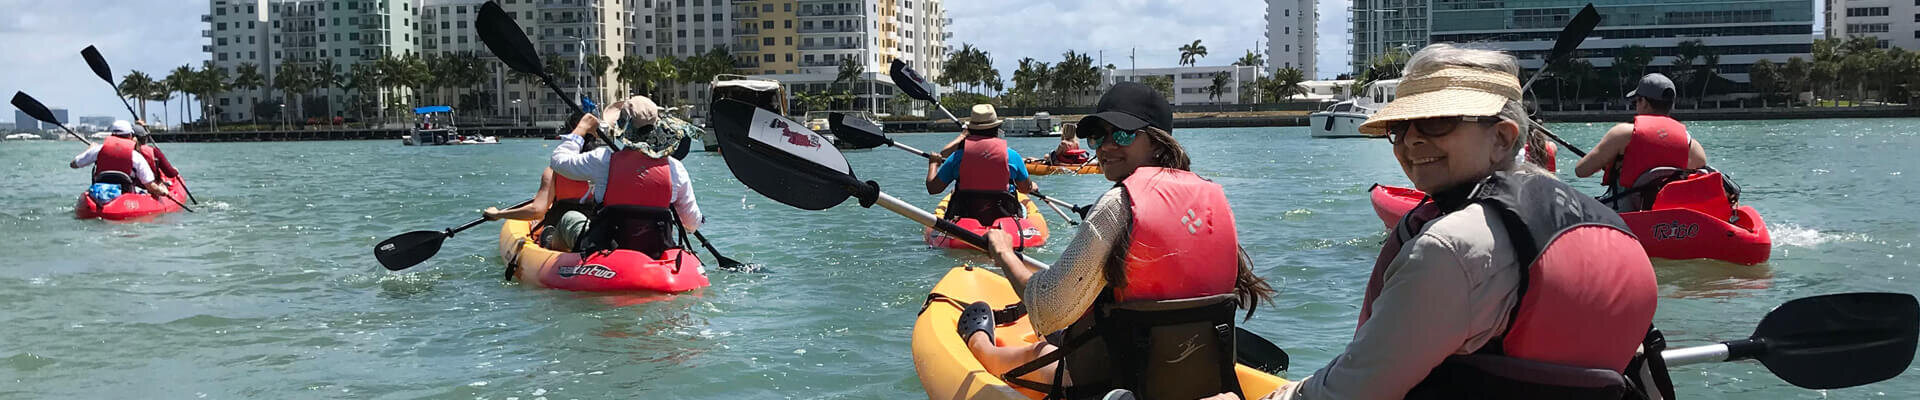 Kayaks and Paddle Board REntal Equipment